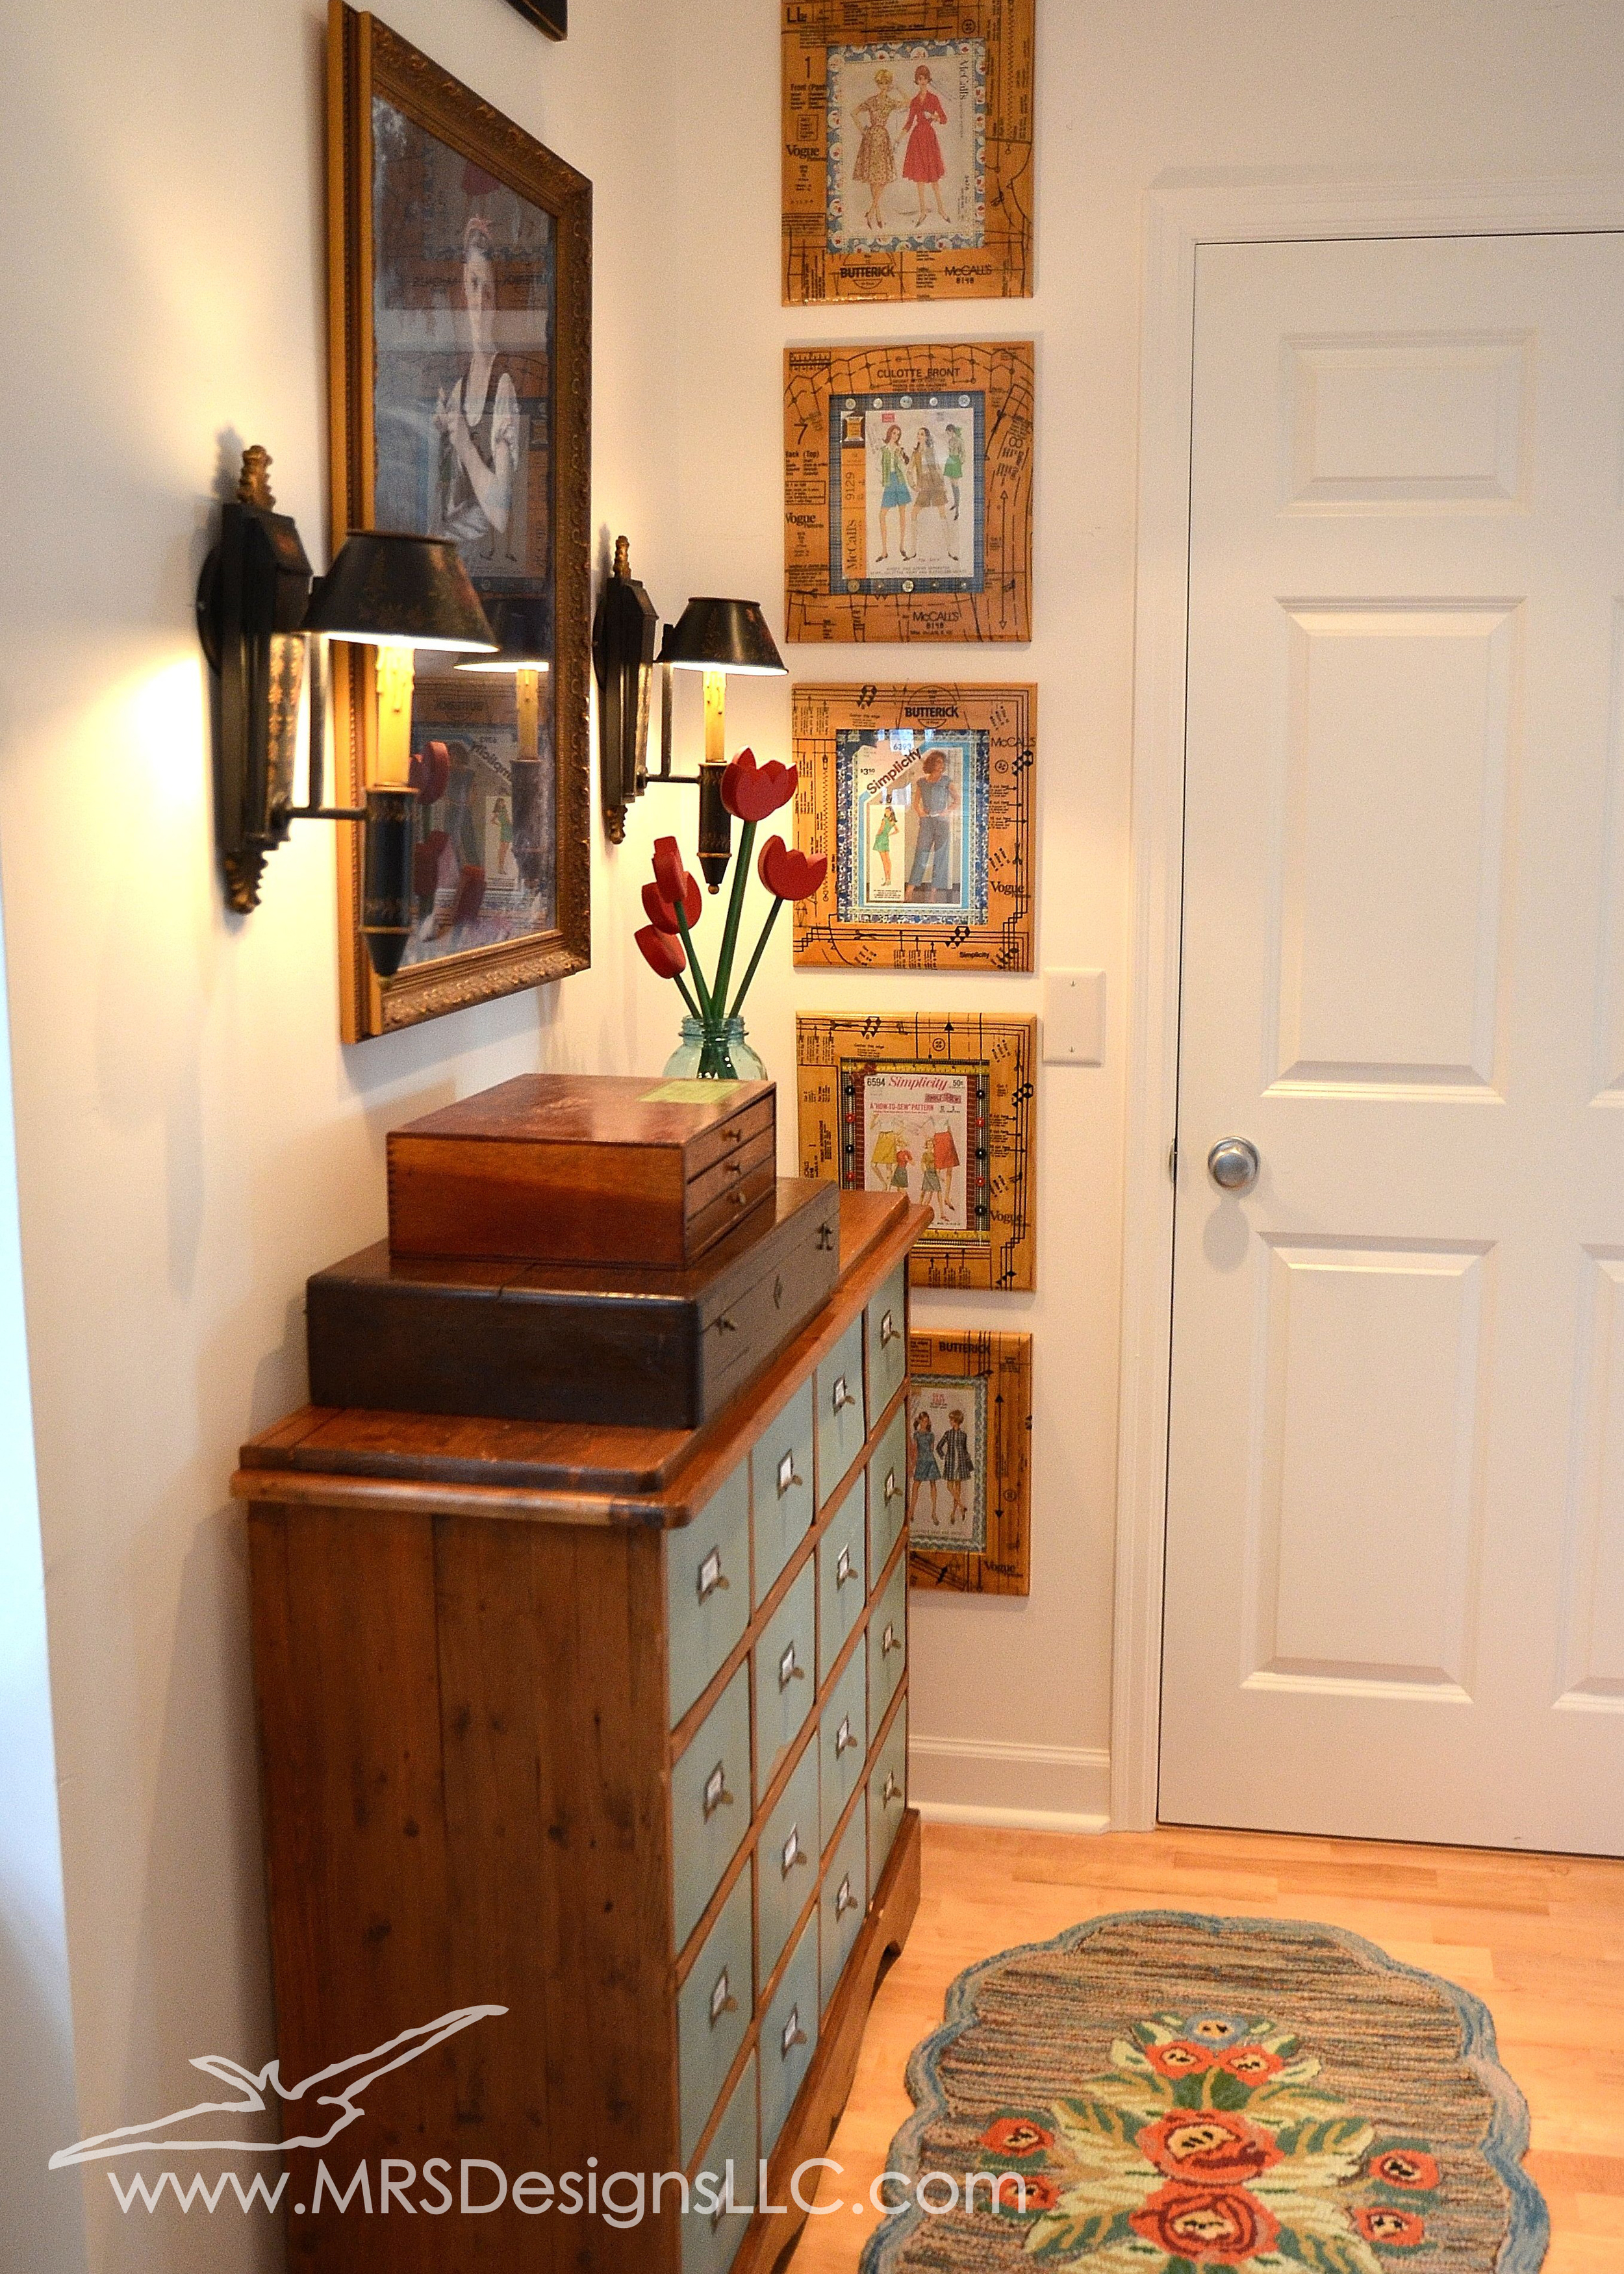 MRS Designs Blog - Refinishing a Vintage Storage Cabinet for Your Craft Room